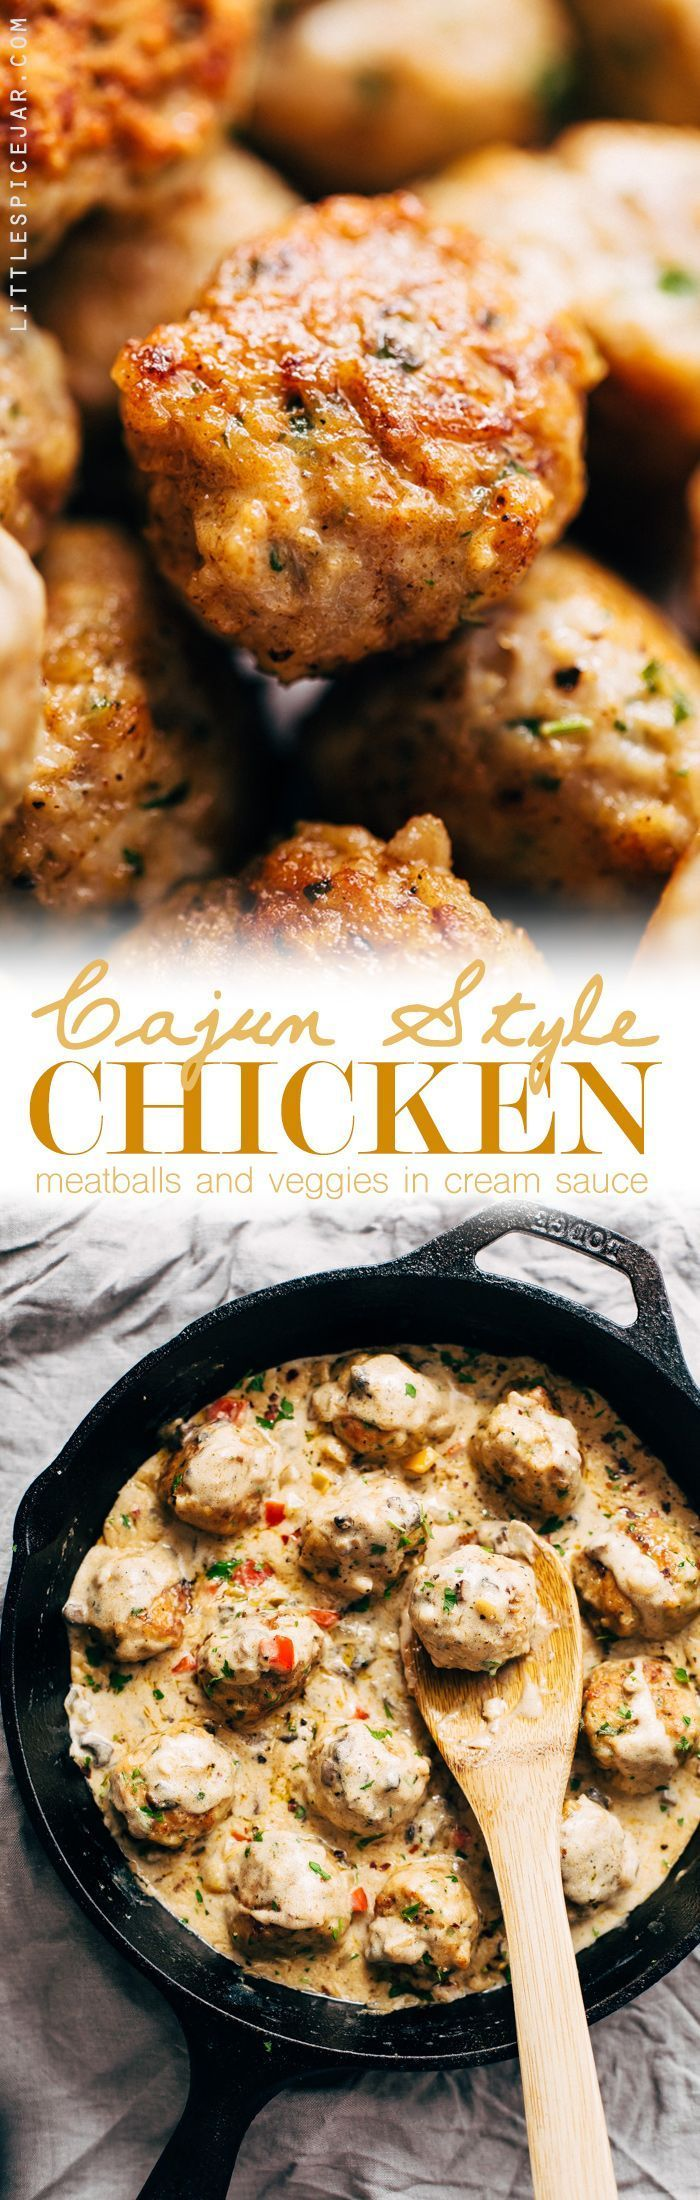 Cajun Chicken Meatballs in Tasty Cream Sauce - These meatballs are flavored with cajun seasoning and perfect to serve with garlic bread or egg noodles! So comforting! #cajunchickenmeatballs #chickenmeatballs #meatballs #creamsauce | http://Littlespicejar.com